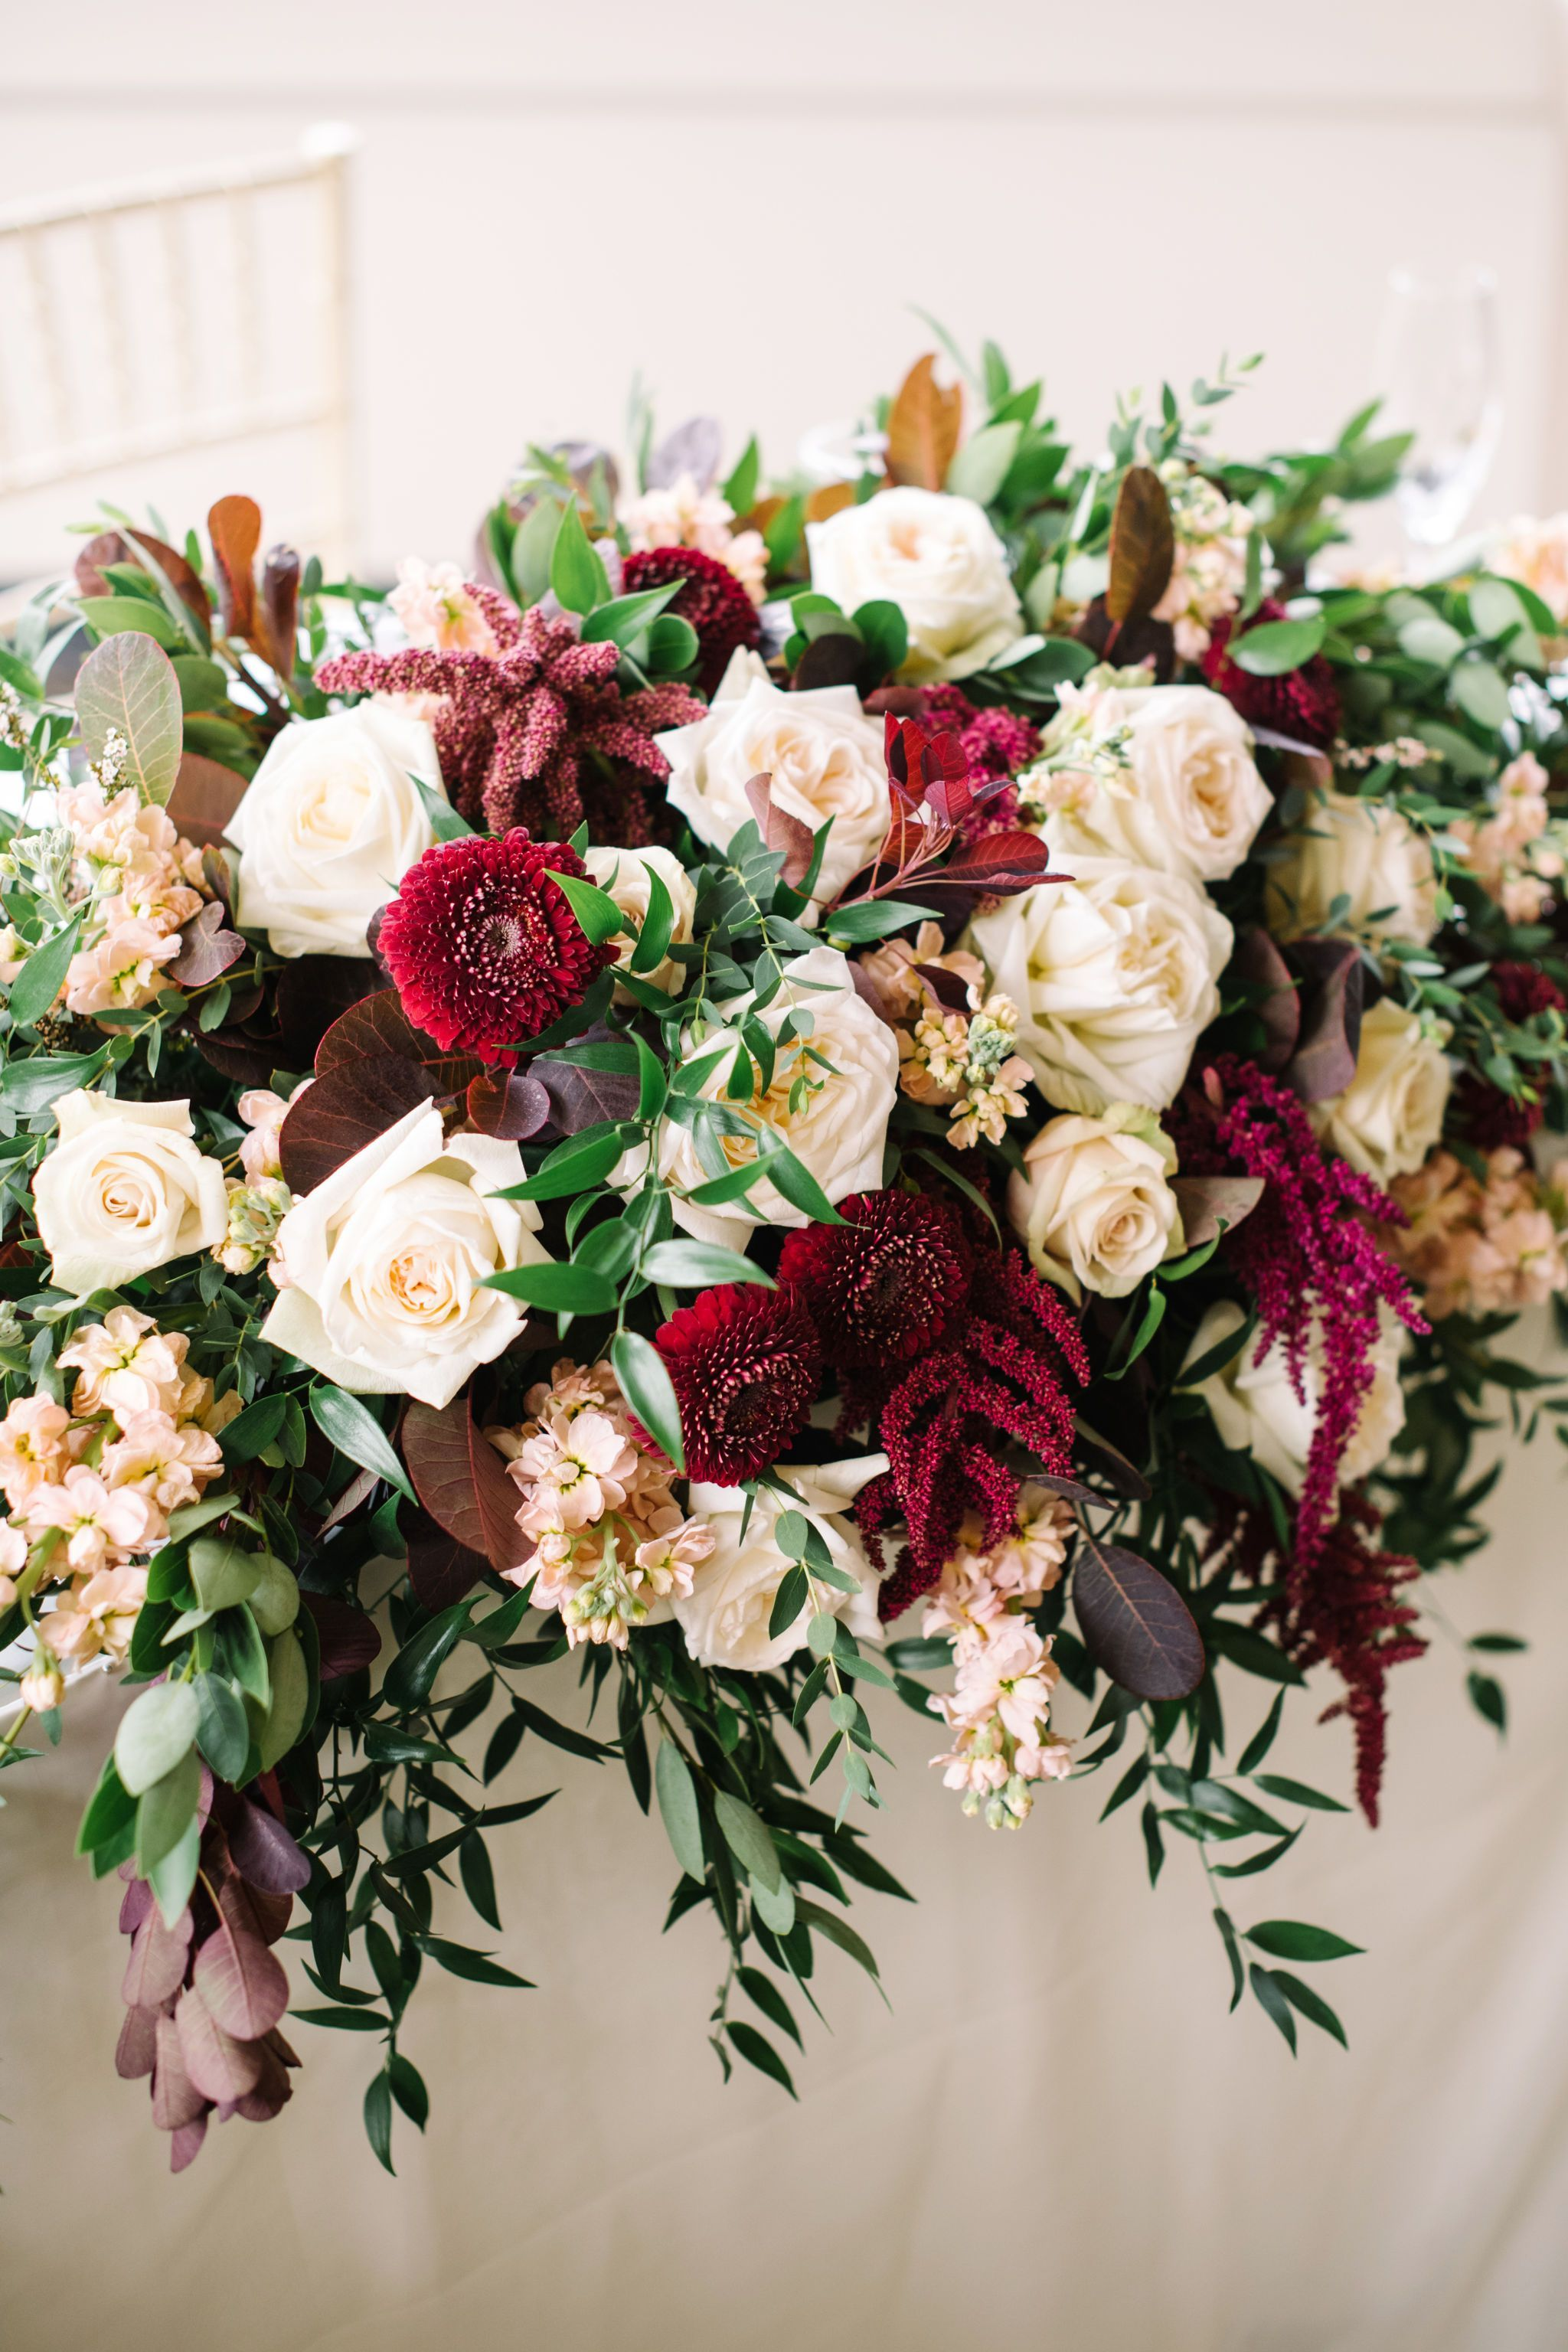 Black Earth Floral Gallery Florist In Calgary Ab Same Day Flower Delivery Floral Beautiful Flower Arrangements Floral Wedding